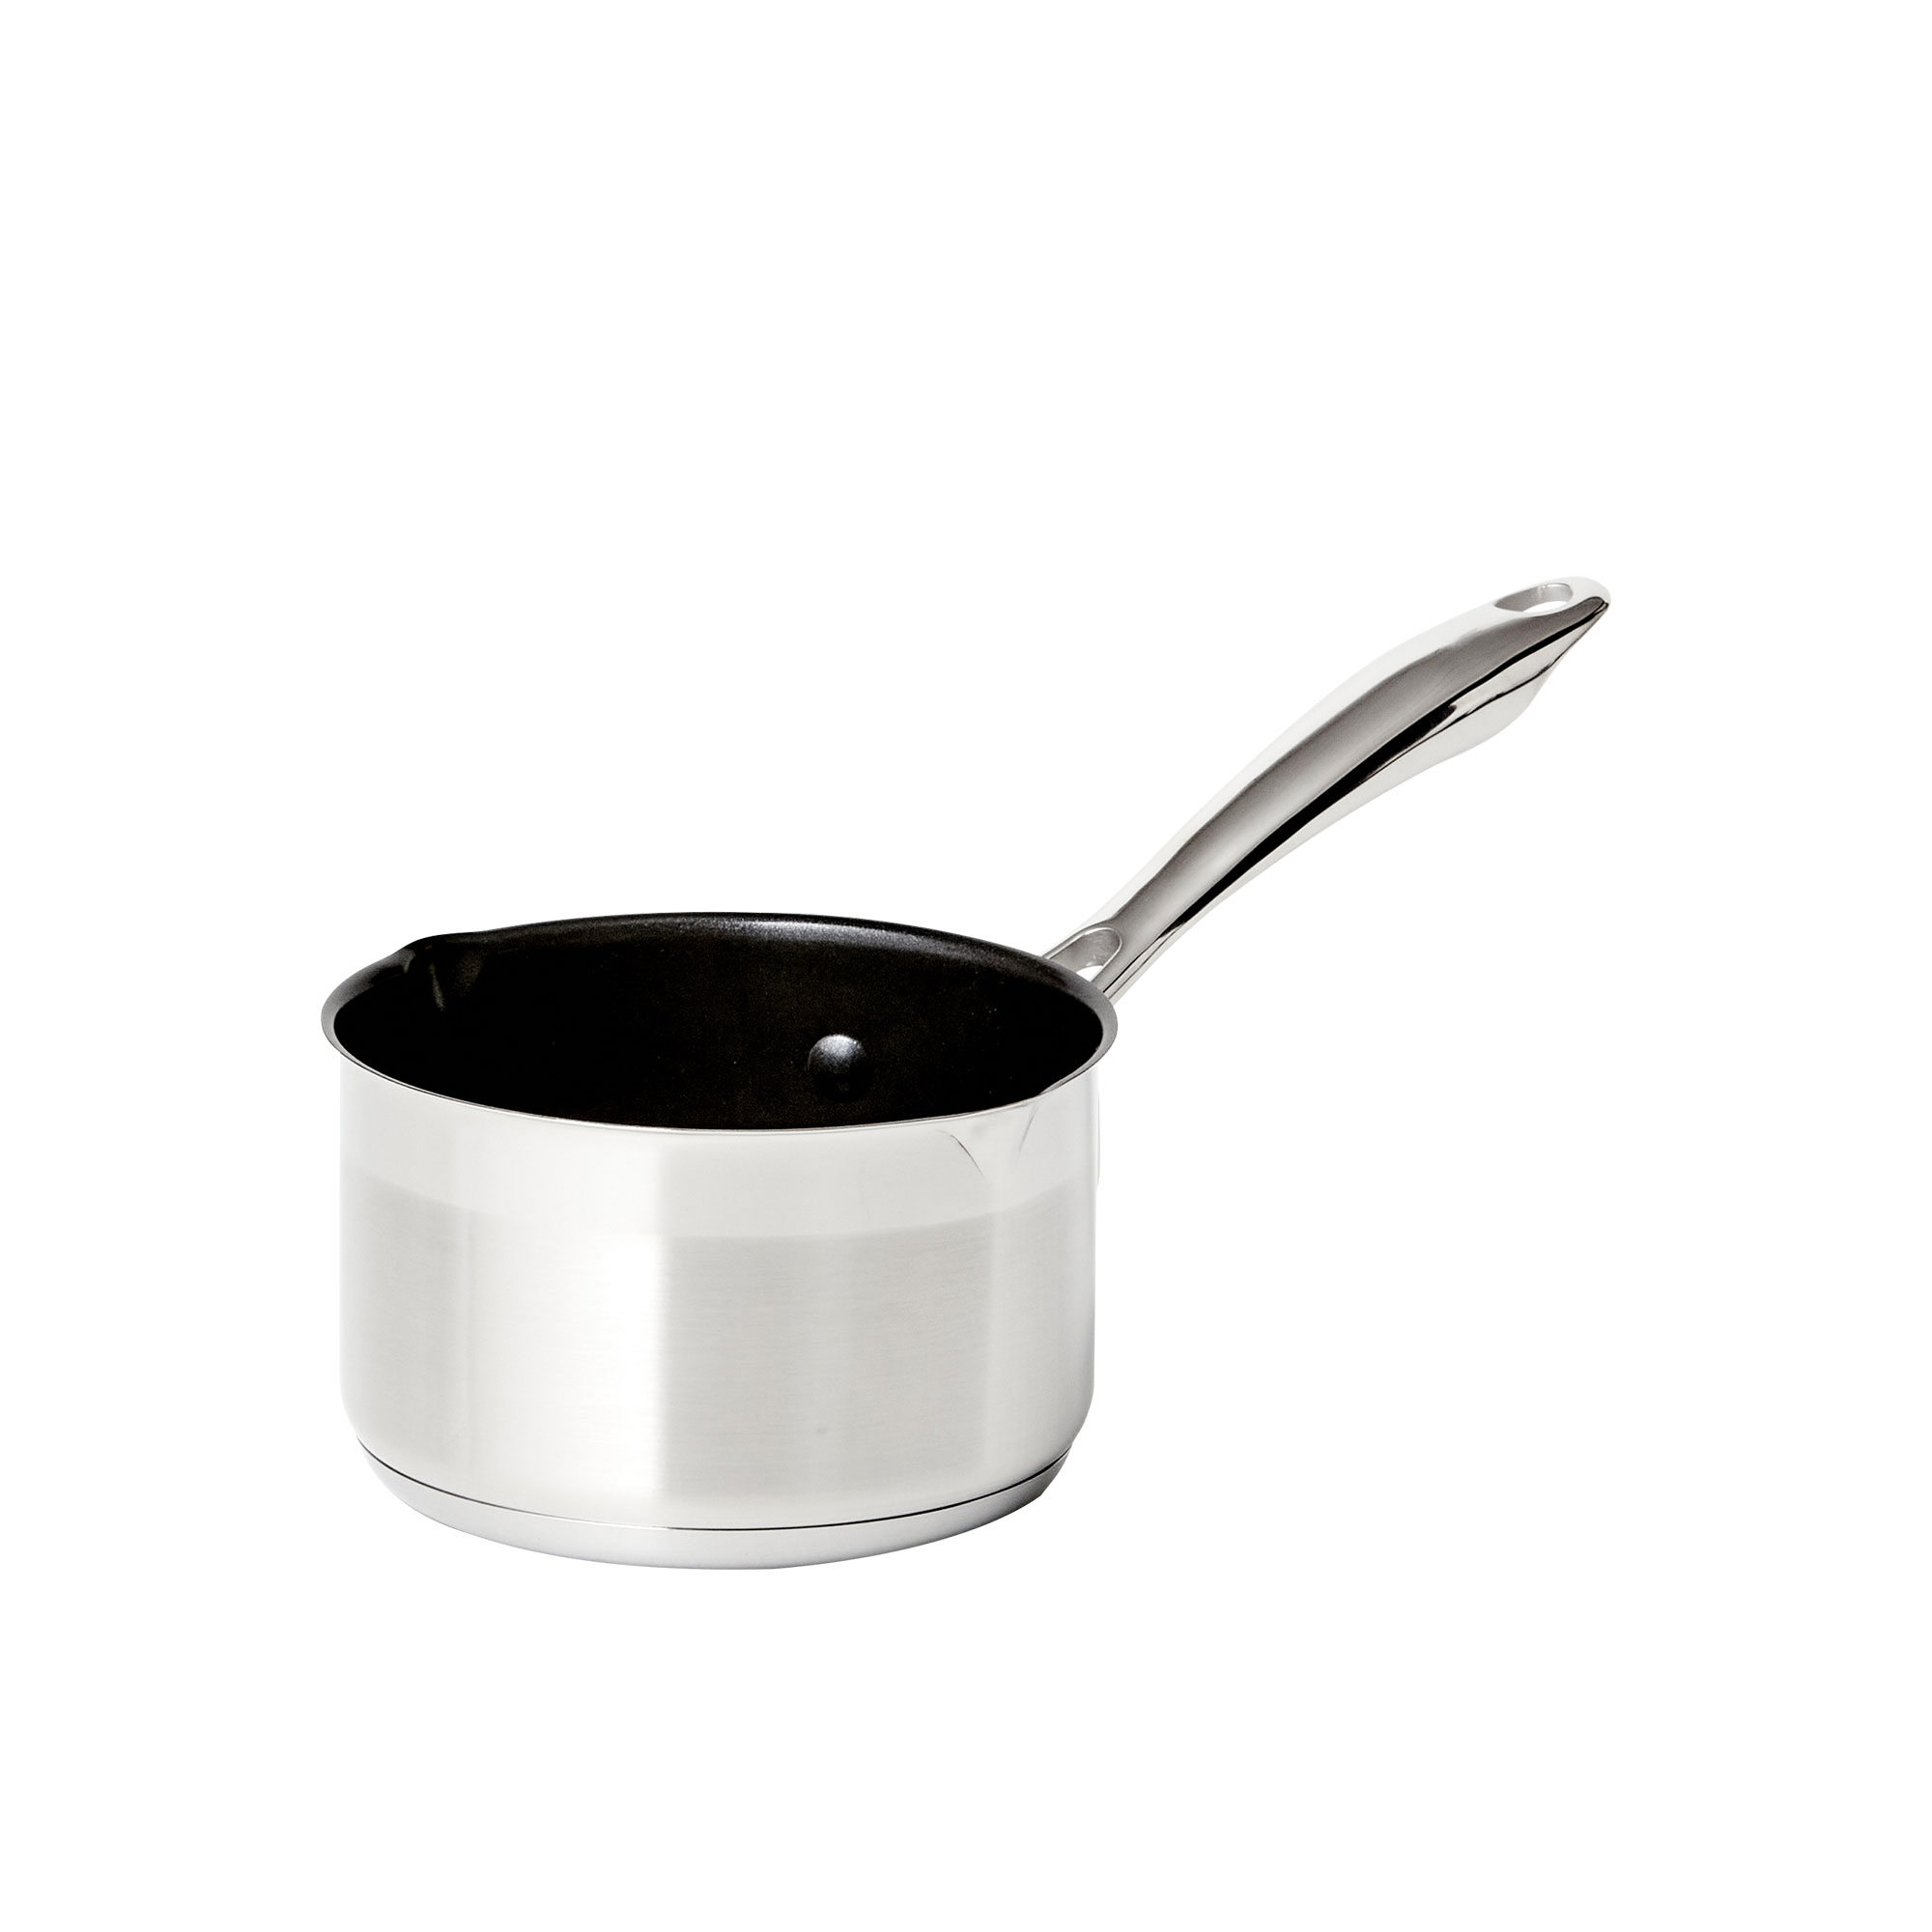 Wolstead Steeltek Stainless Steel Non-Stick Milk Pan 14cm